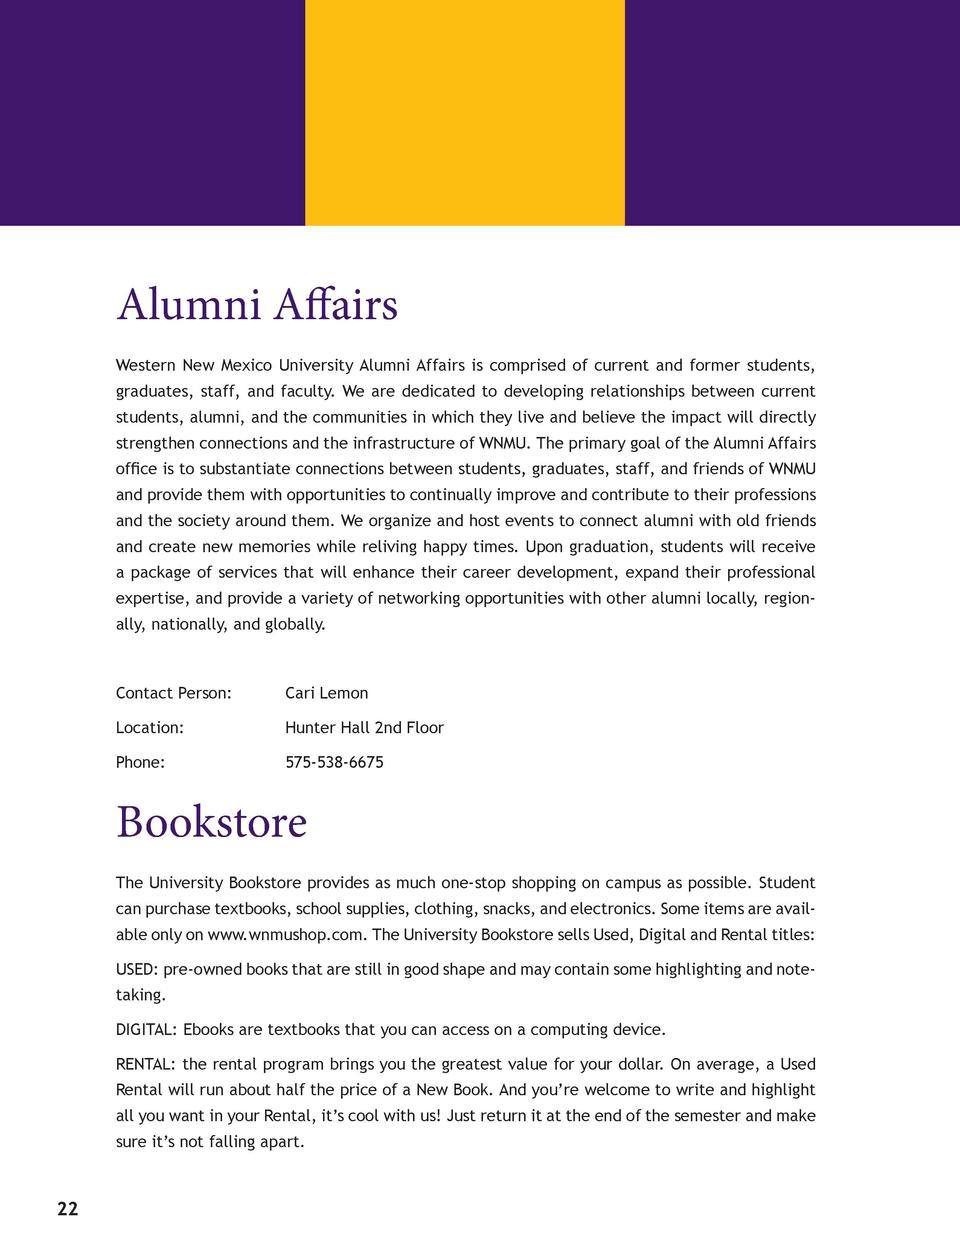 Alumni Affairs Western New Mexico University Alumni Affairs is comprised of current and former students, graduates, sta...